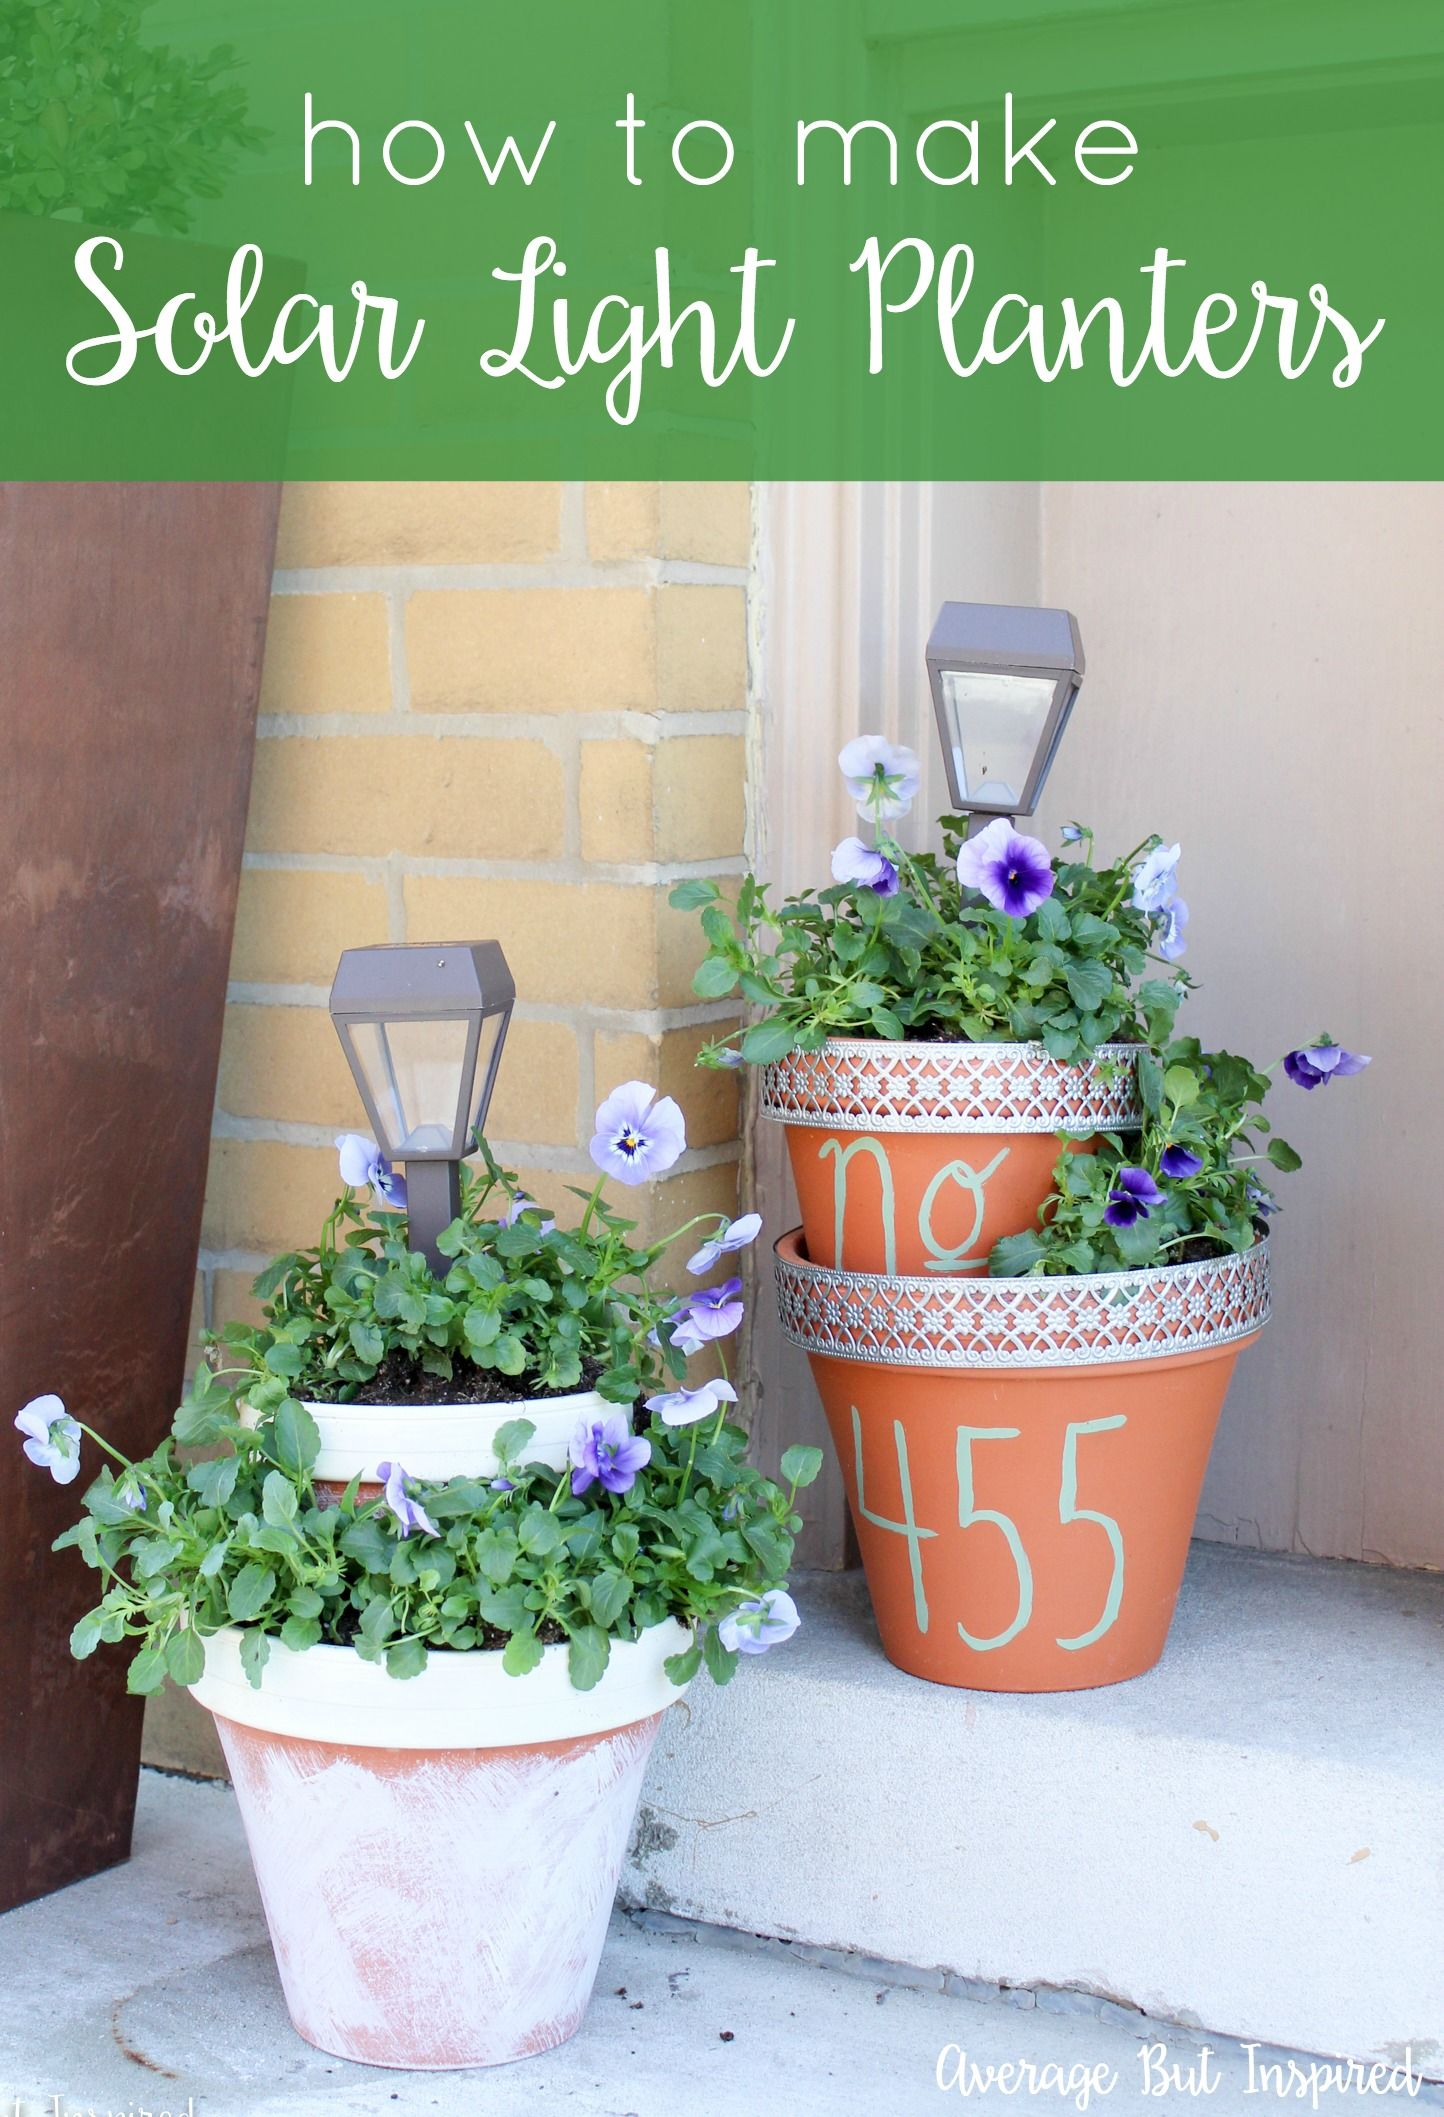 Diy Solar Light Planters Diy Planters Backyard Lighting